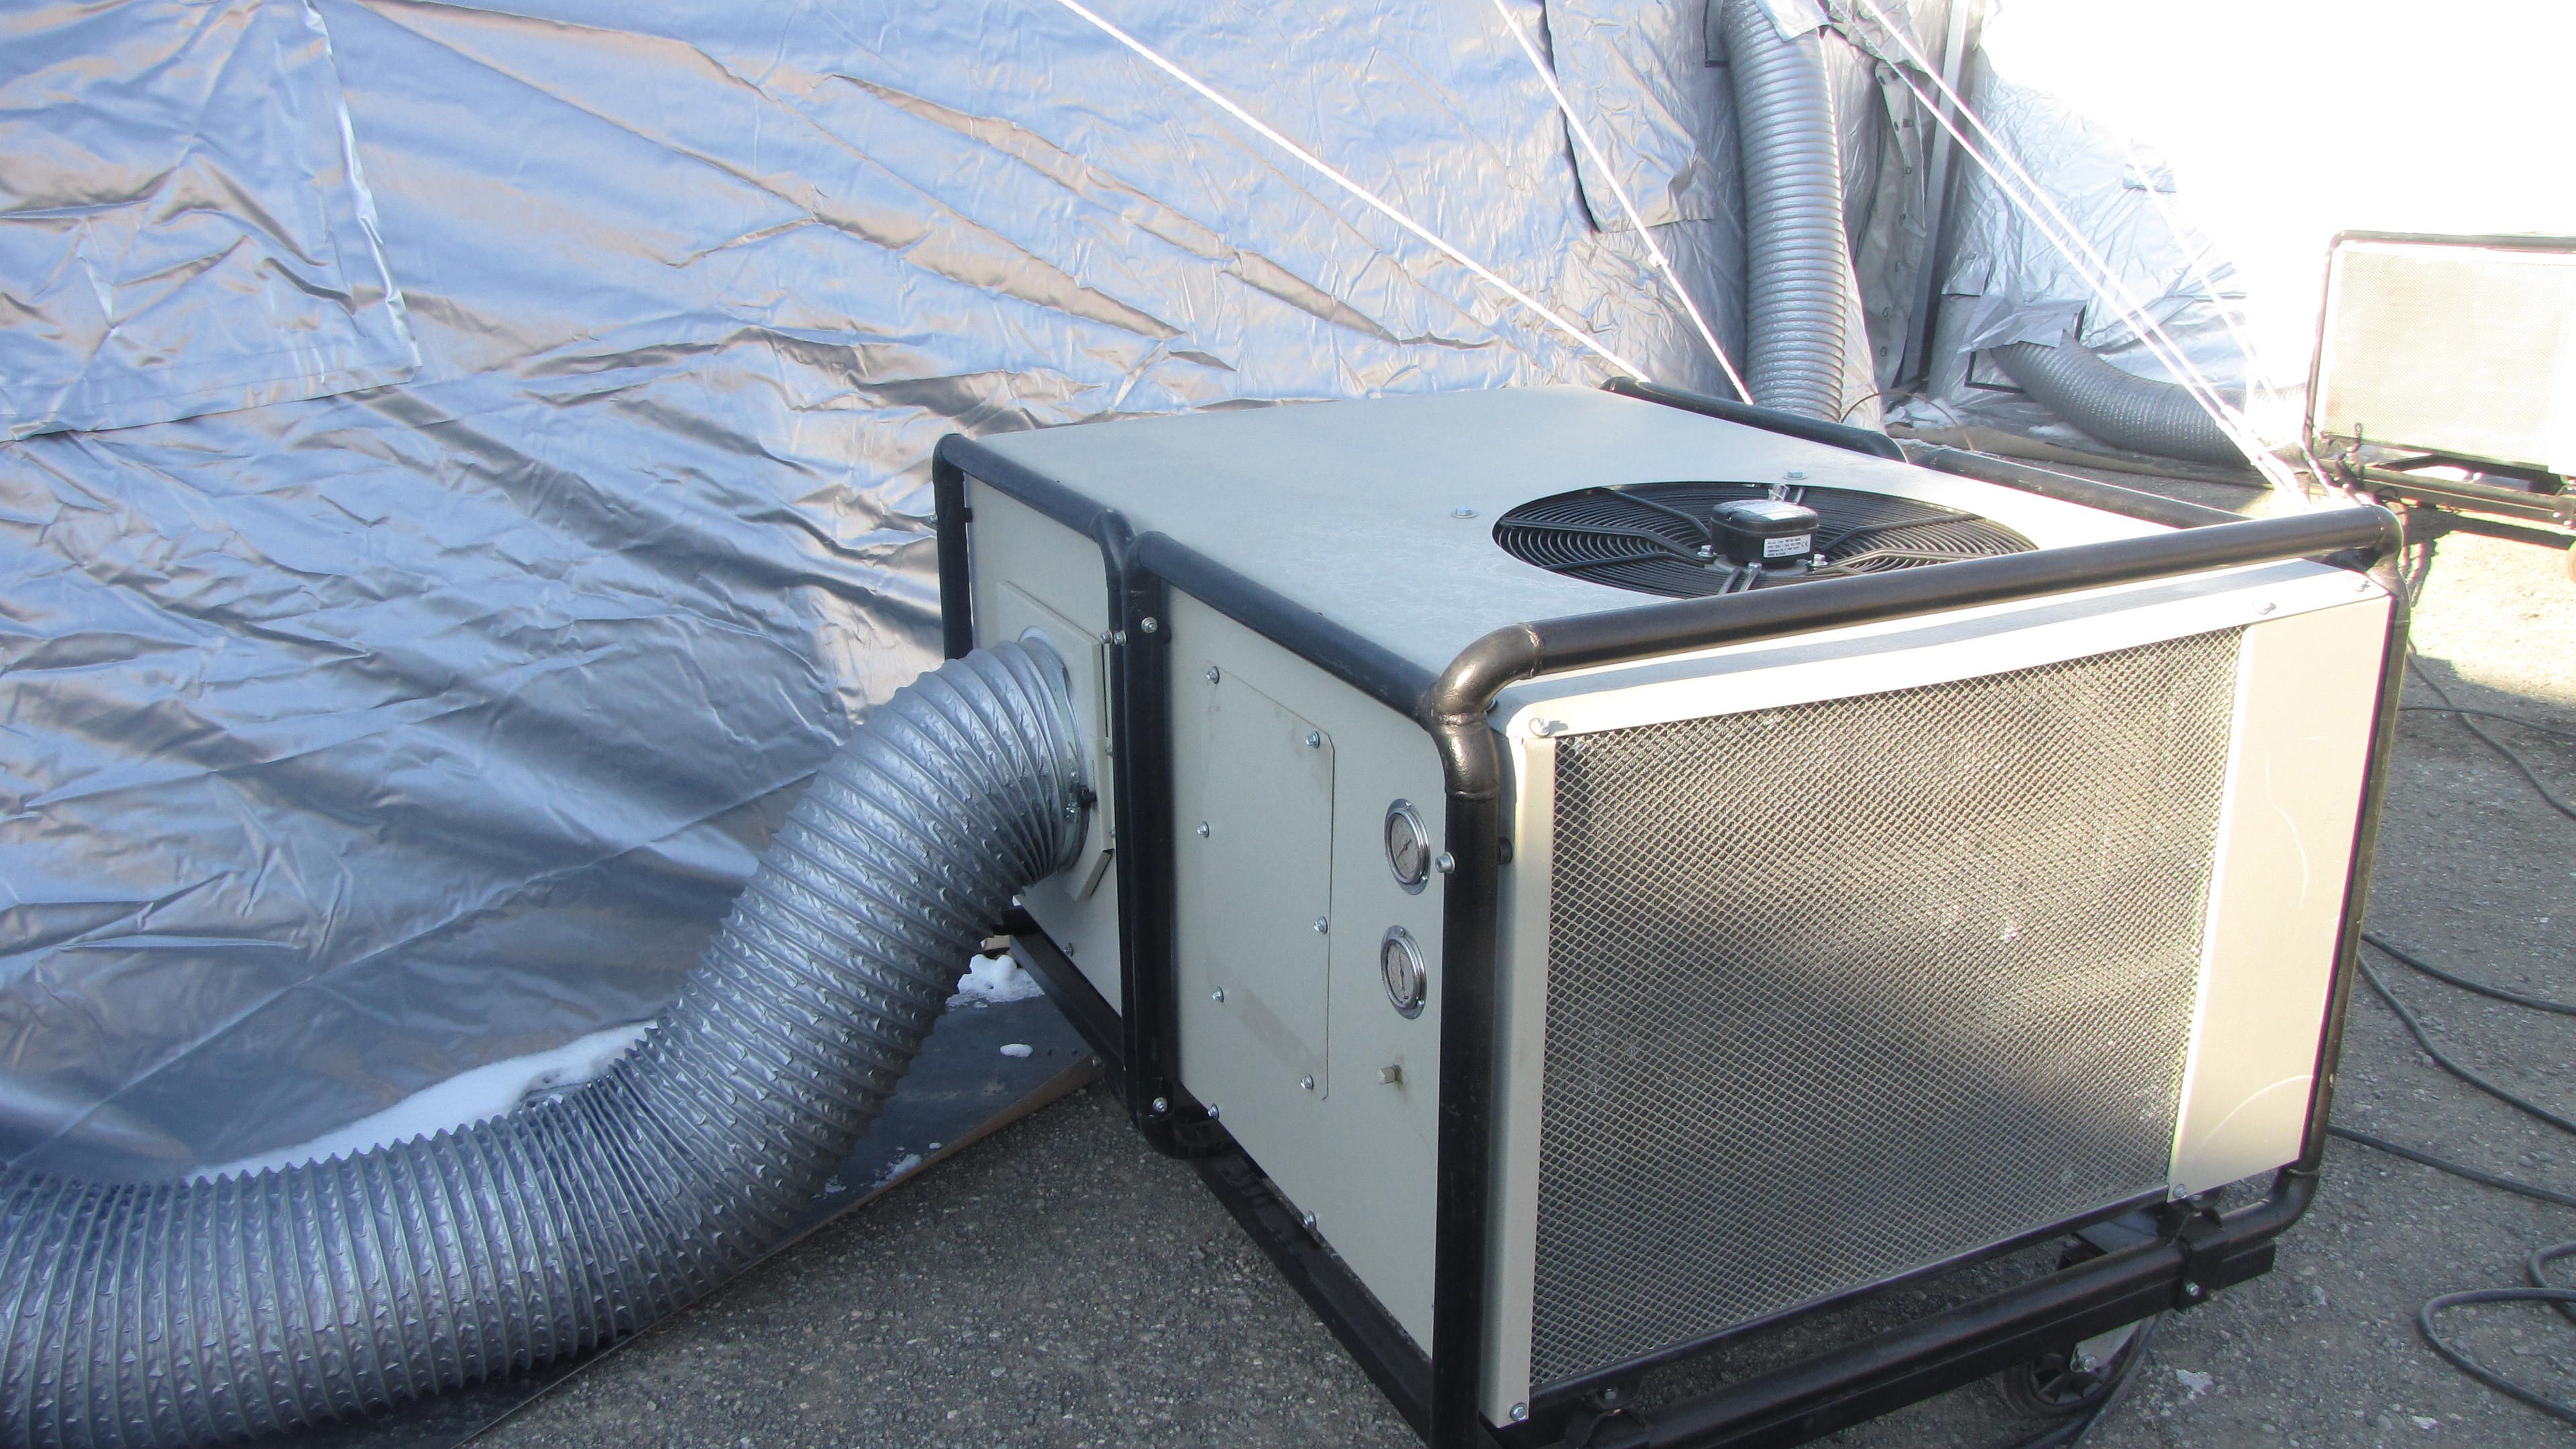 Military Air Conditioning System And Tent Air Conditioner